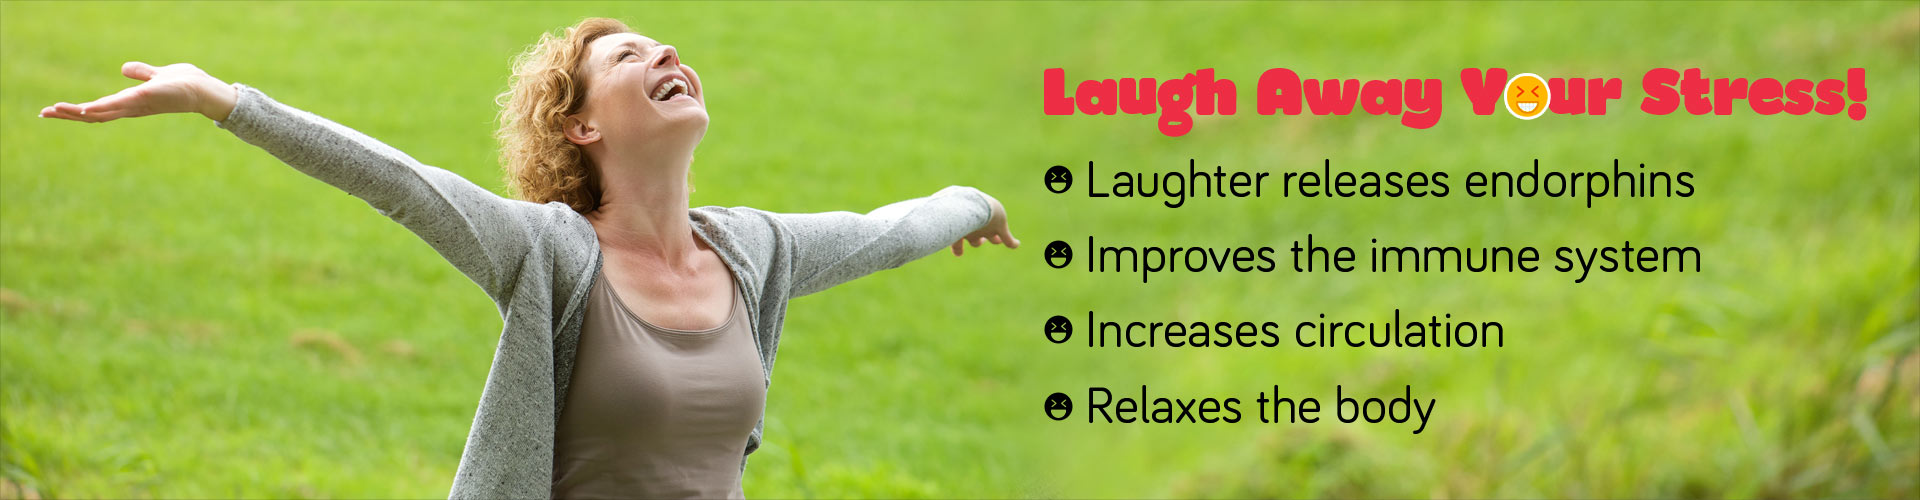 Laugh Away Your Stress! Laughter releases endorphines, improves the immune system, increases circulation and relaxes the body.